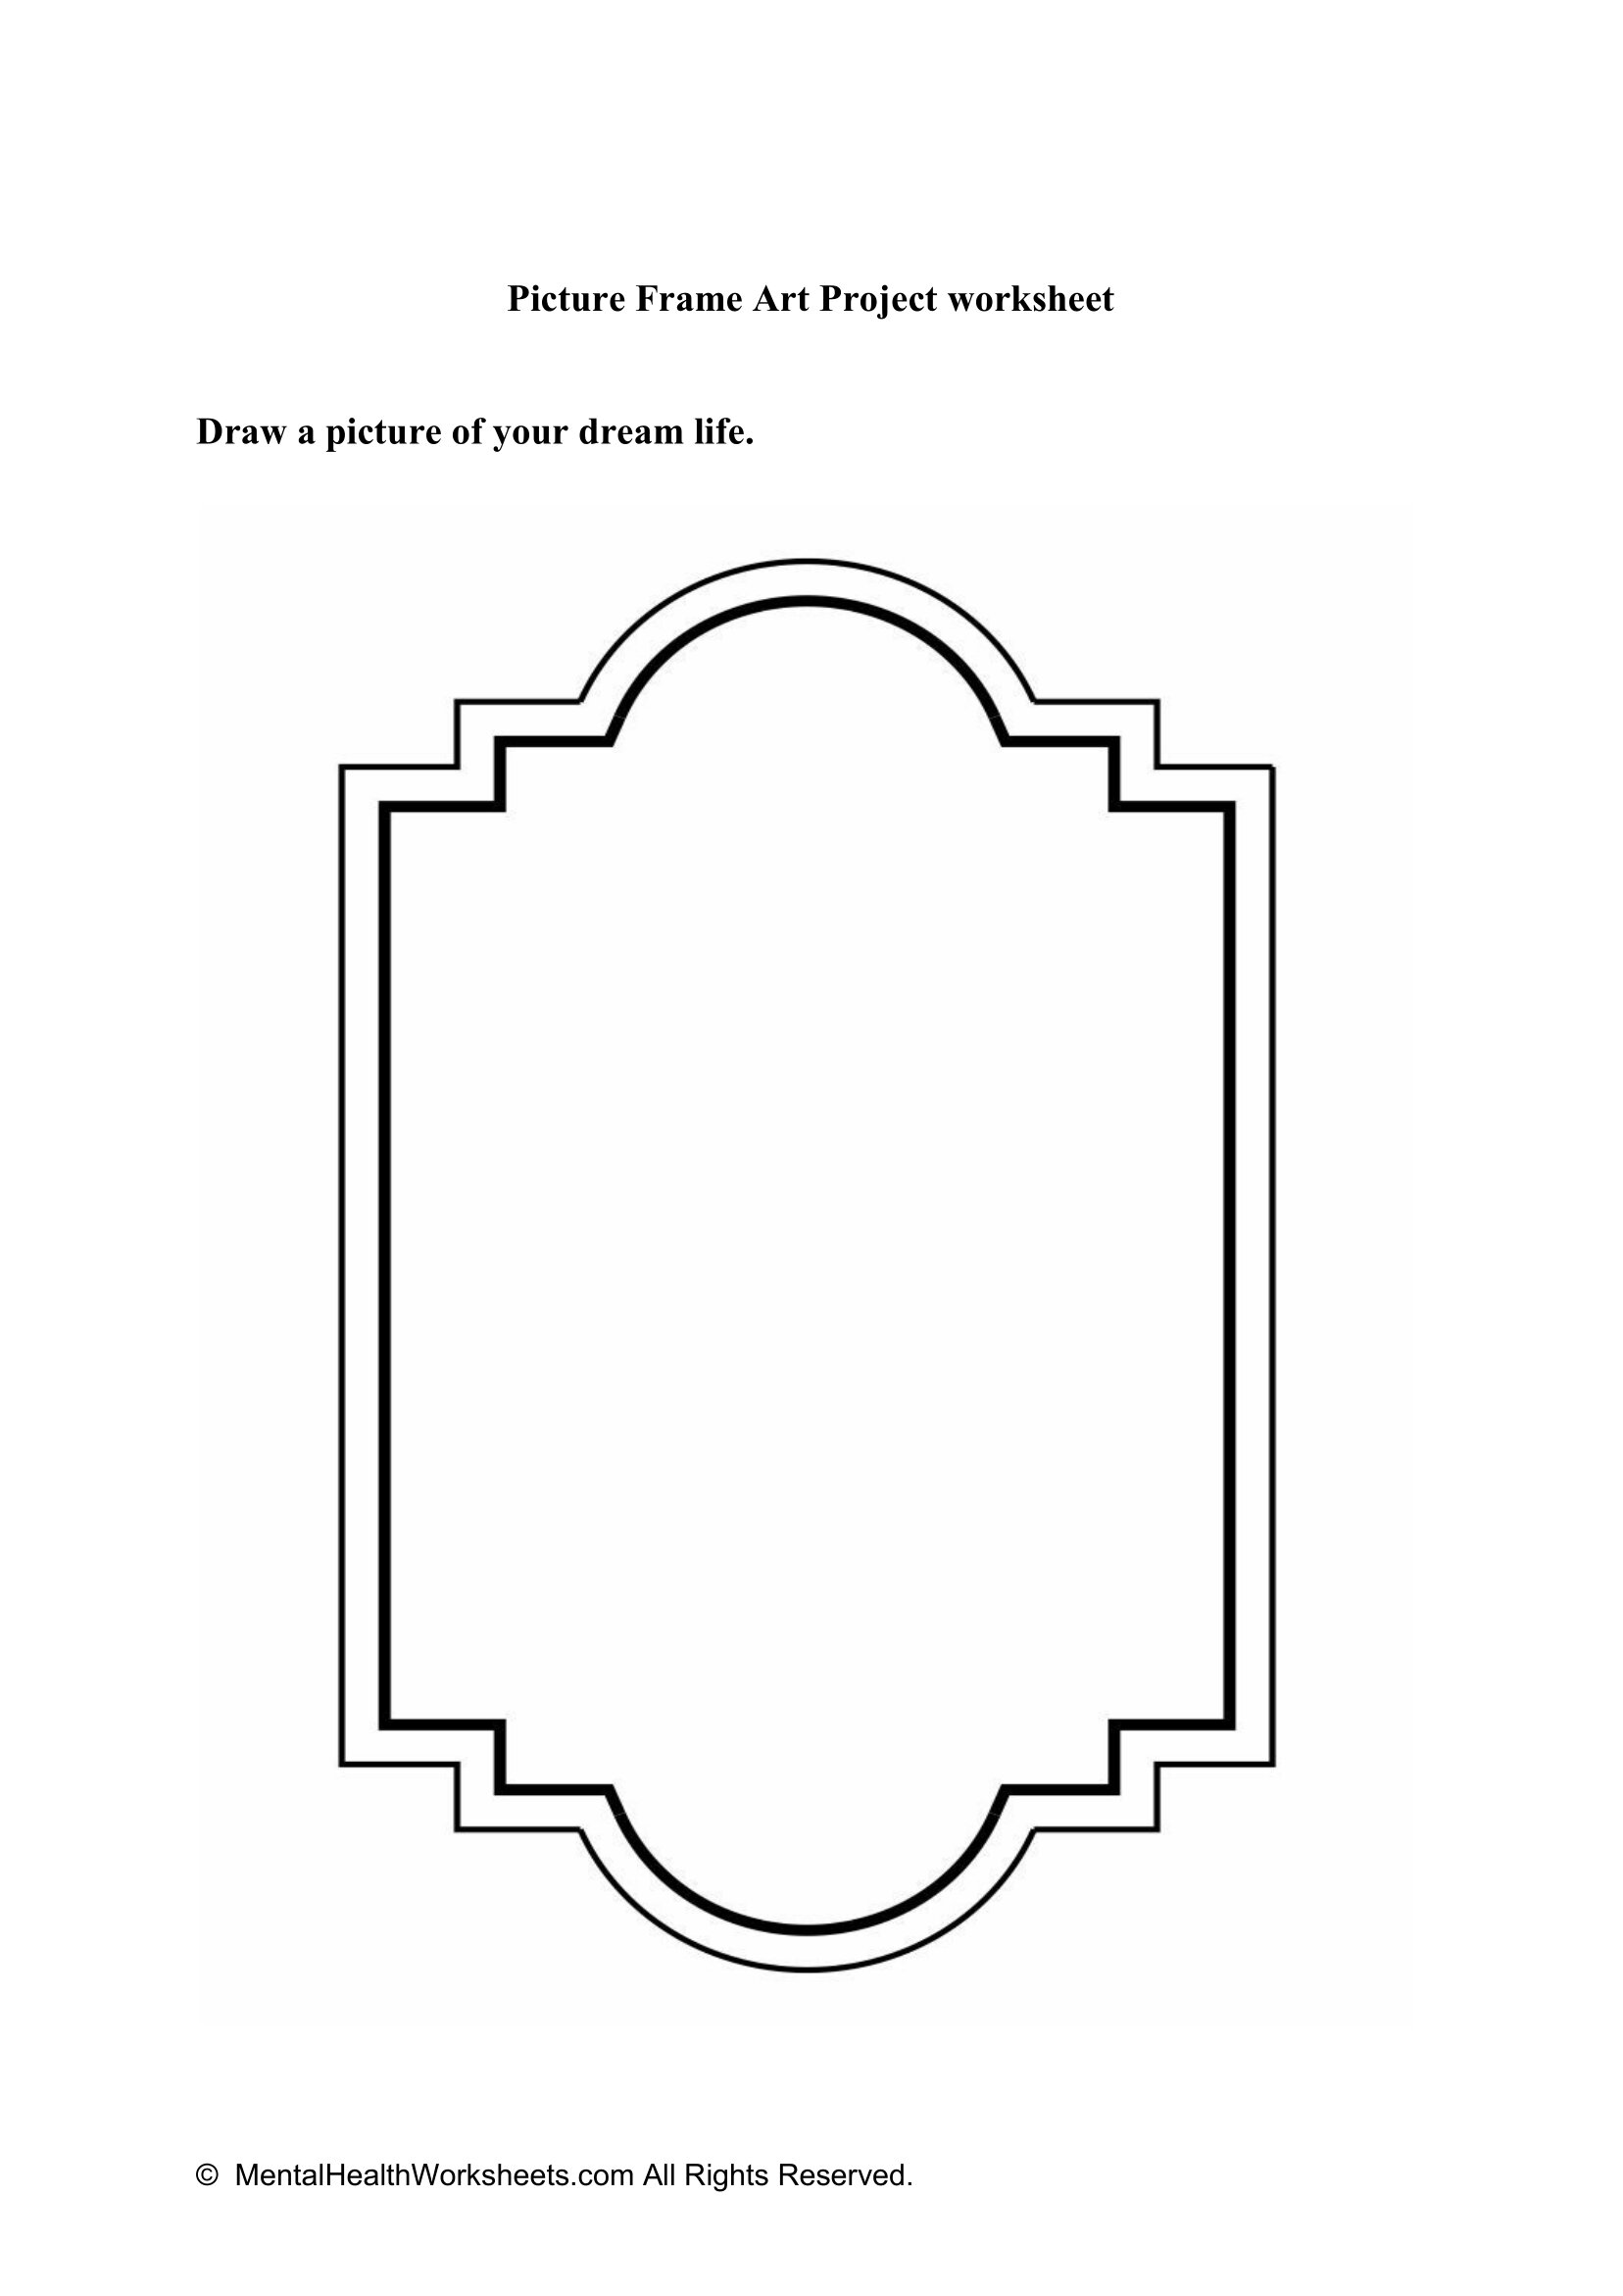 Picture Frame Art Project Worksheet